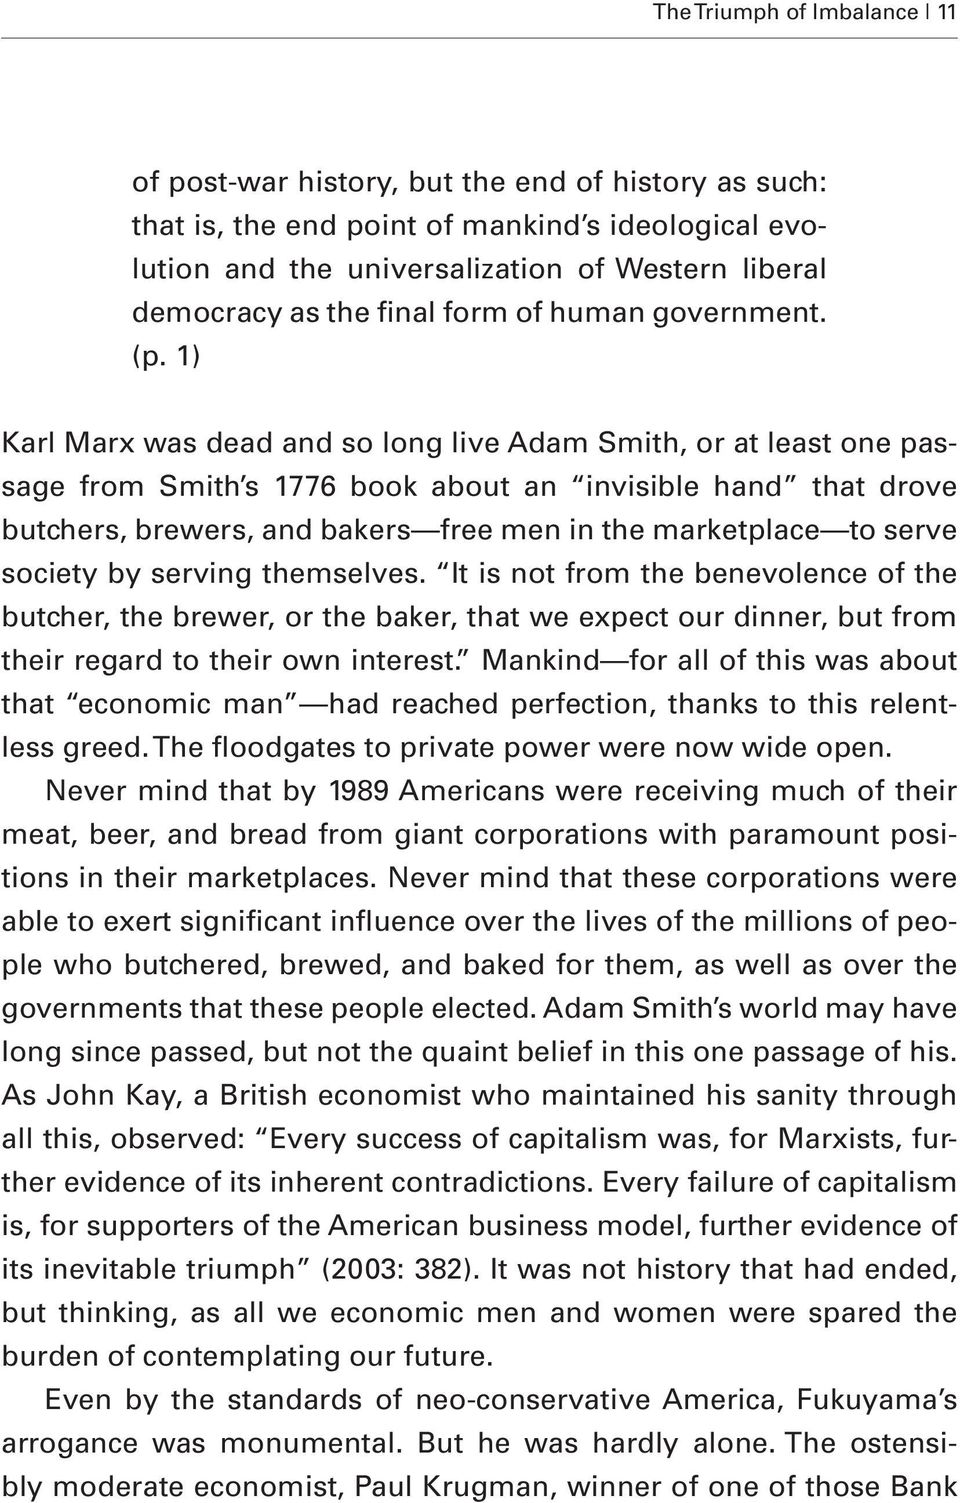 1) Karl Marx was dead and so long live Adam Smith, or at least one passage from Smith s 1776 book about an invisible hand that drove butchers, brewers, and bakers free men in the marketplace to serve